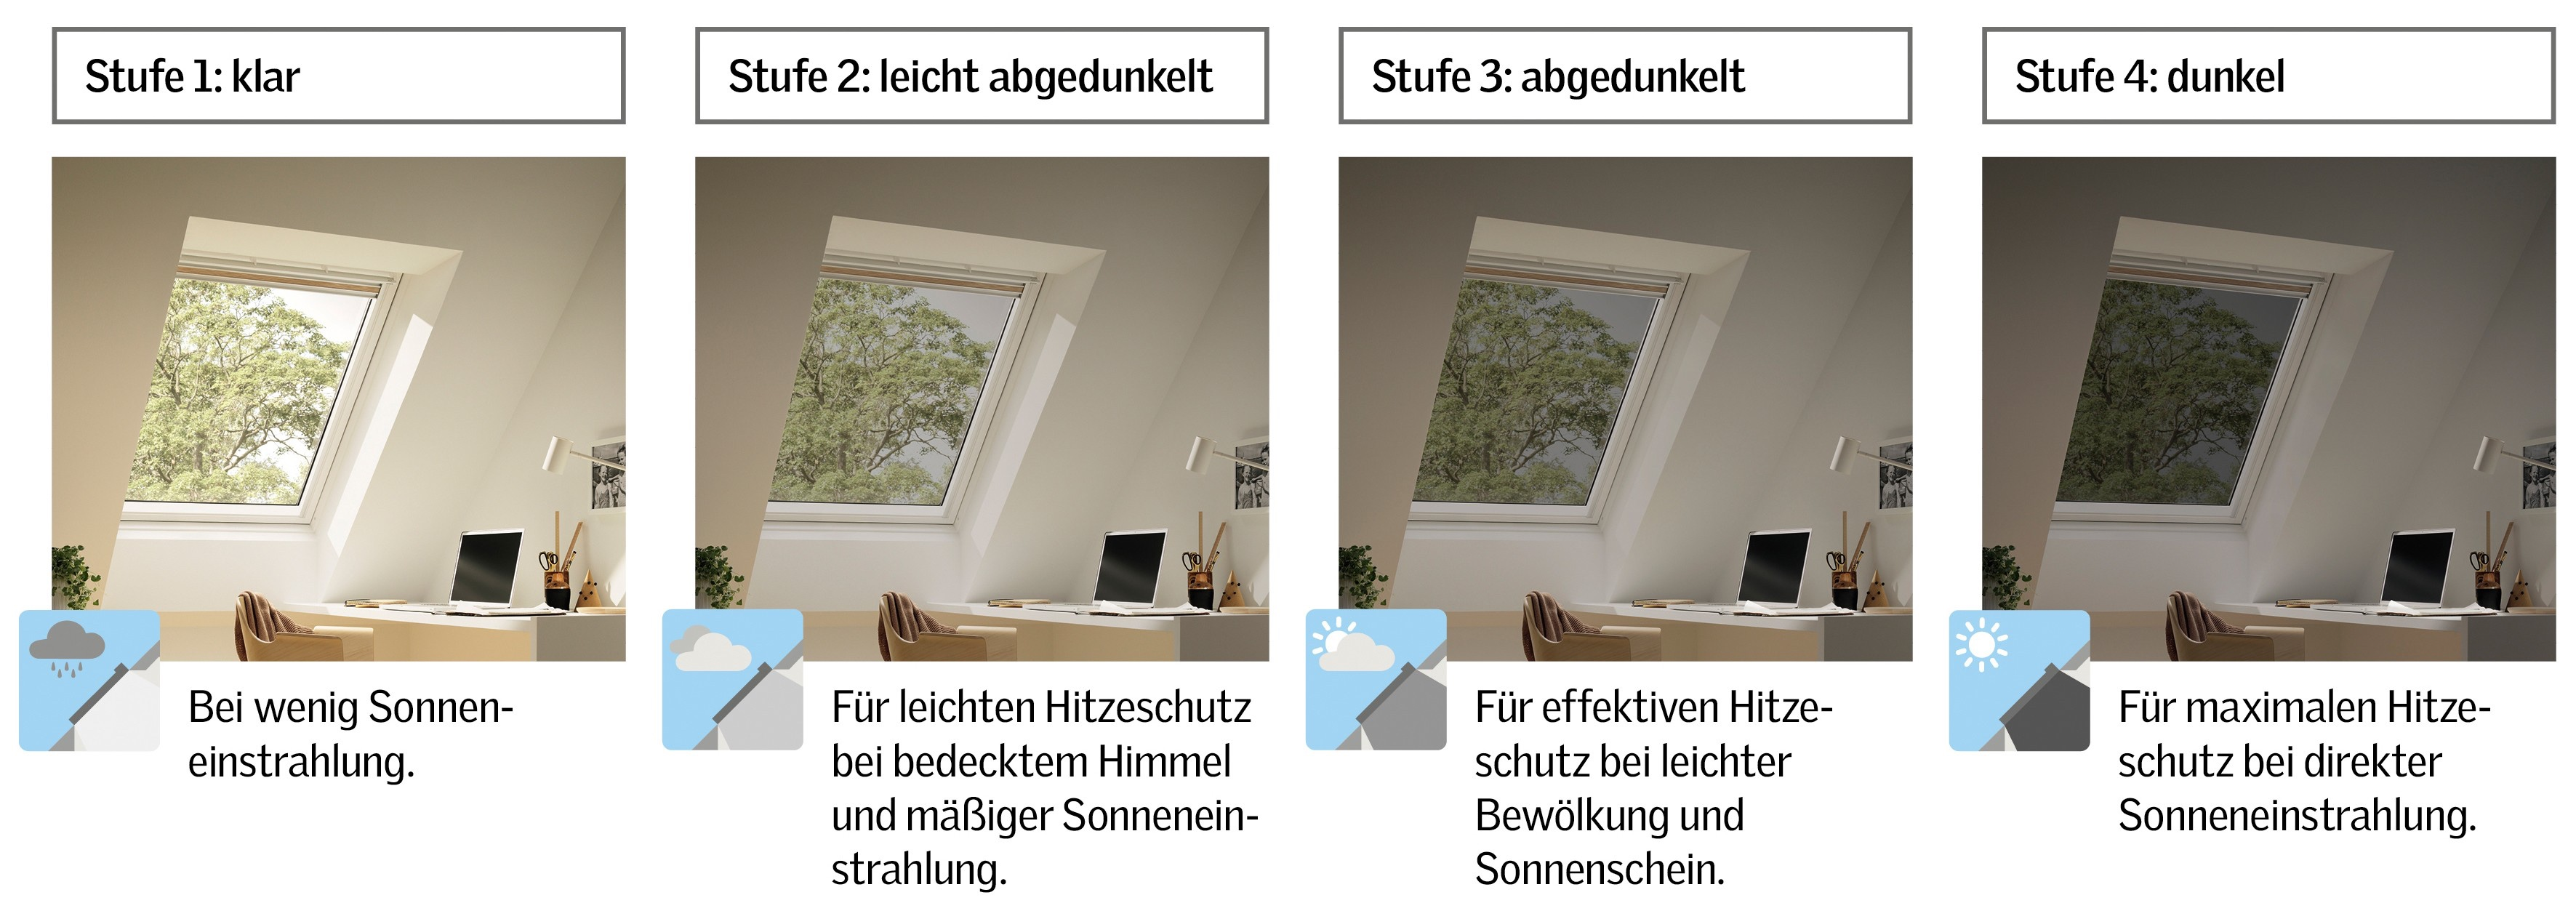 velux preise simple wellker dachfenster with velux preise. Black Bedroom Furniture Sets. Home Design Ideas